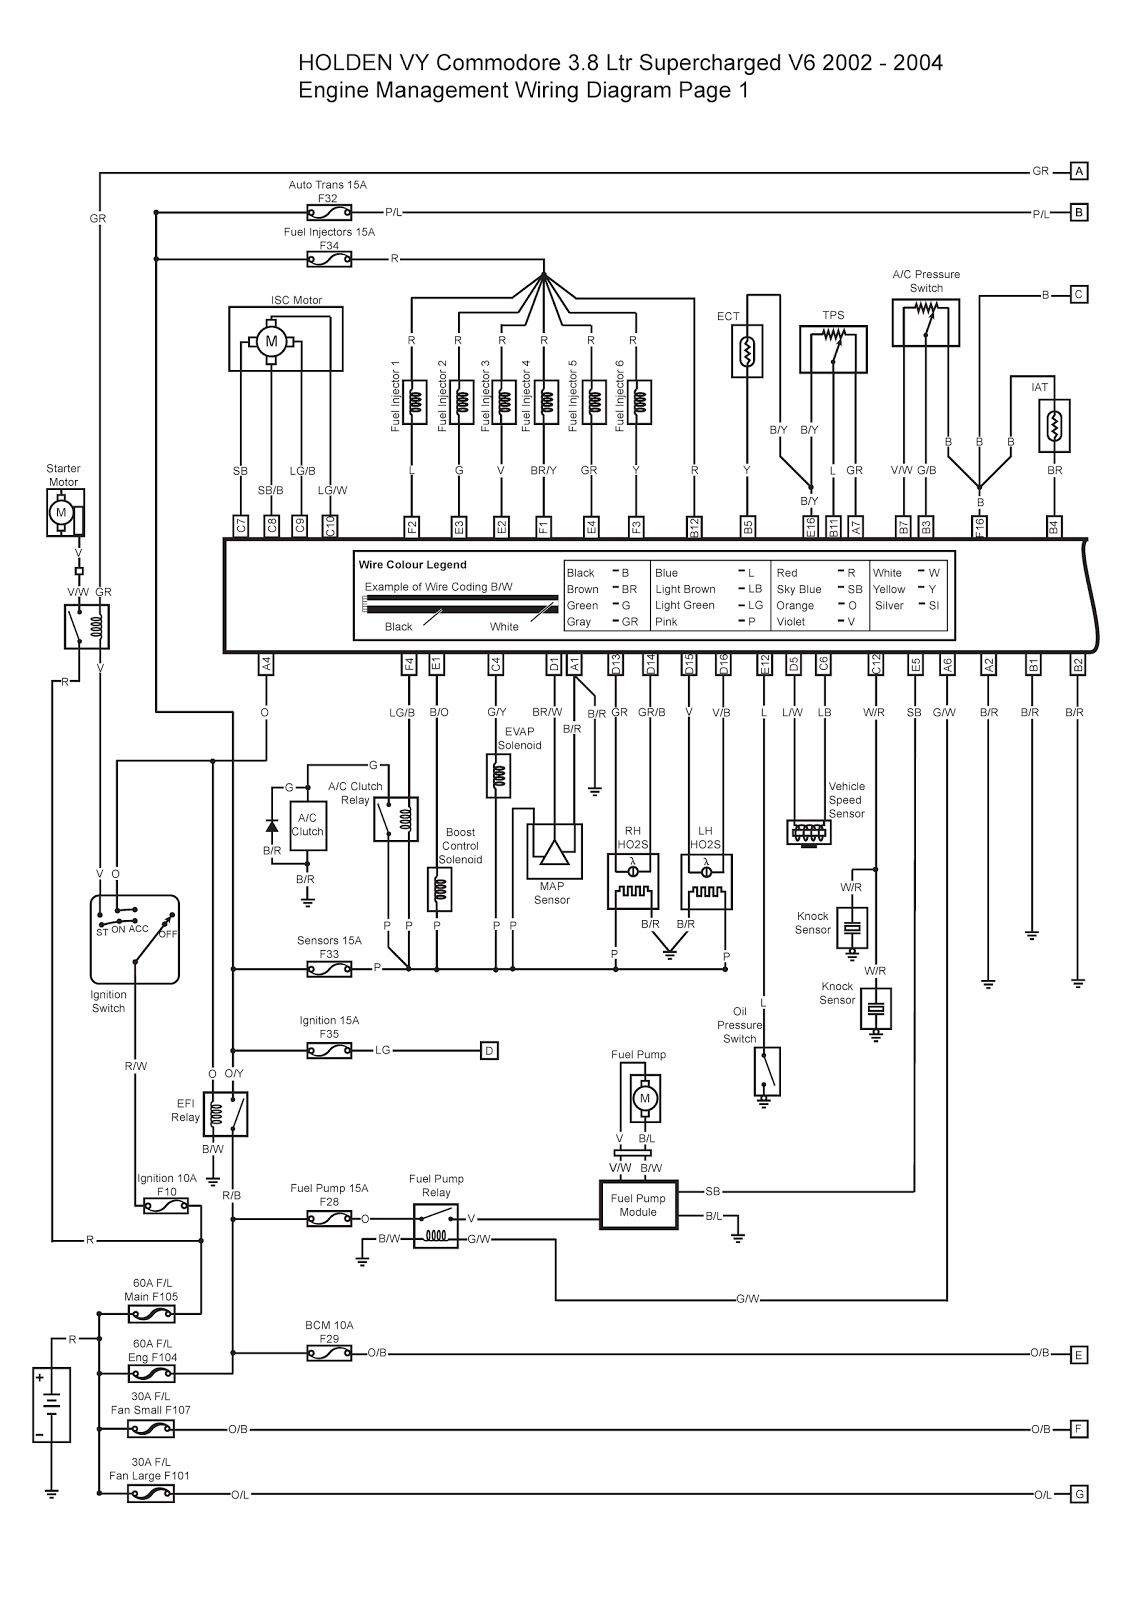 0001 vz wiring diagram efcaviation com vs commodore engine wiring diagram at soozxer.org